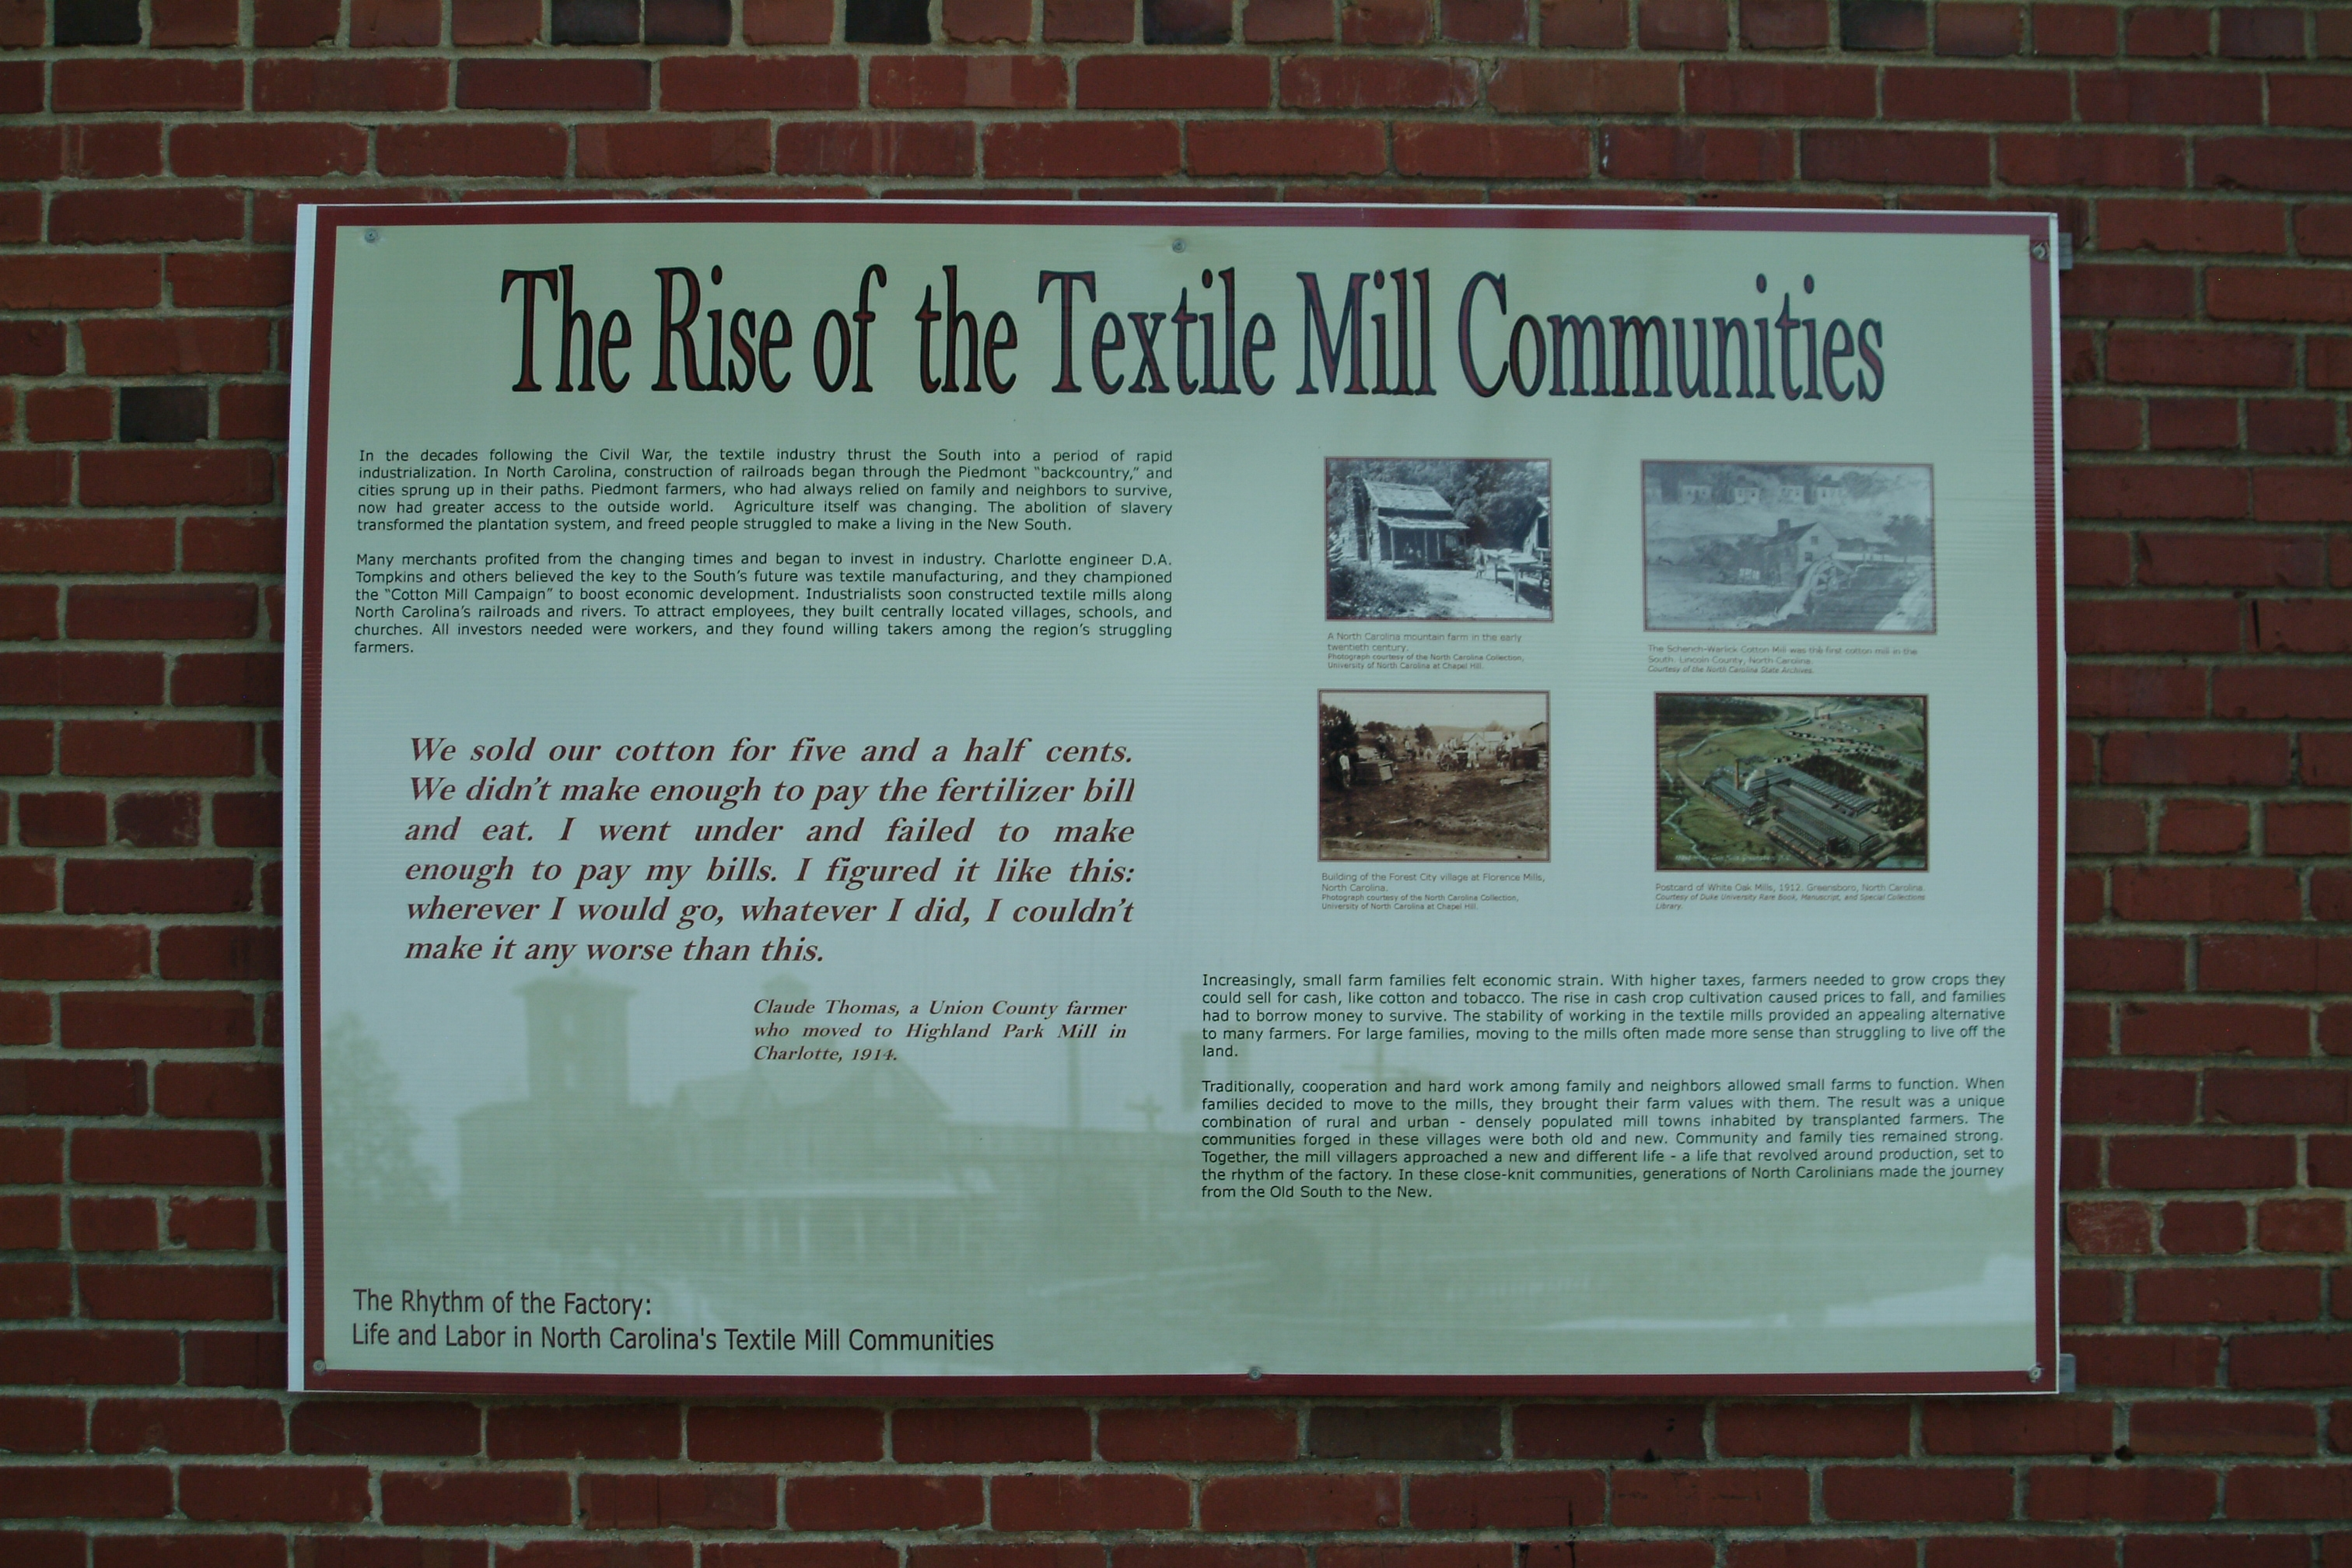 The Rise of the Textile Mill Communities Marker